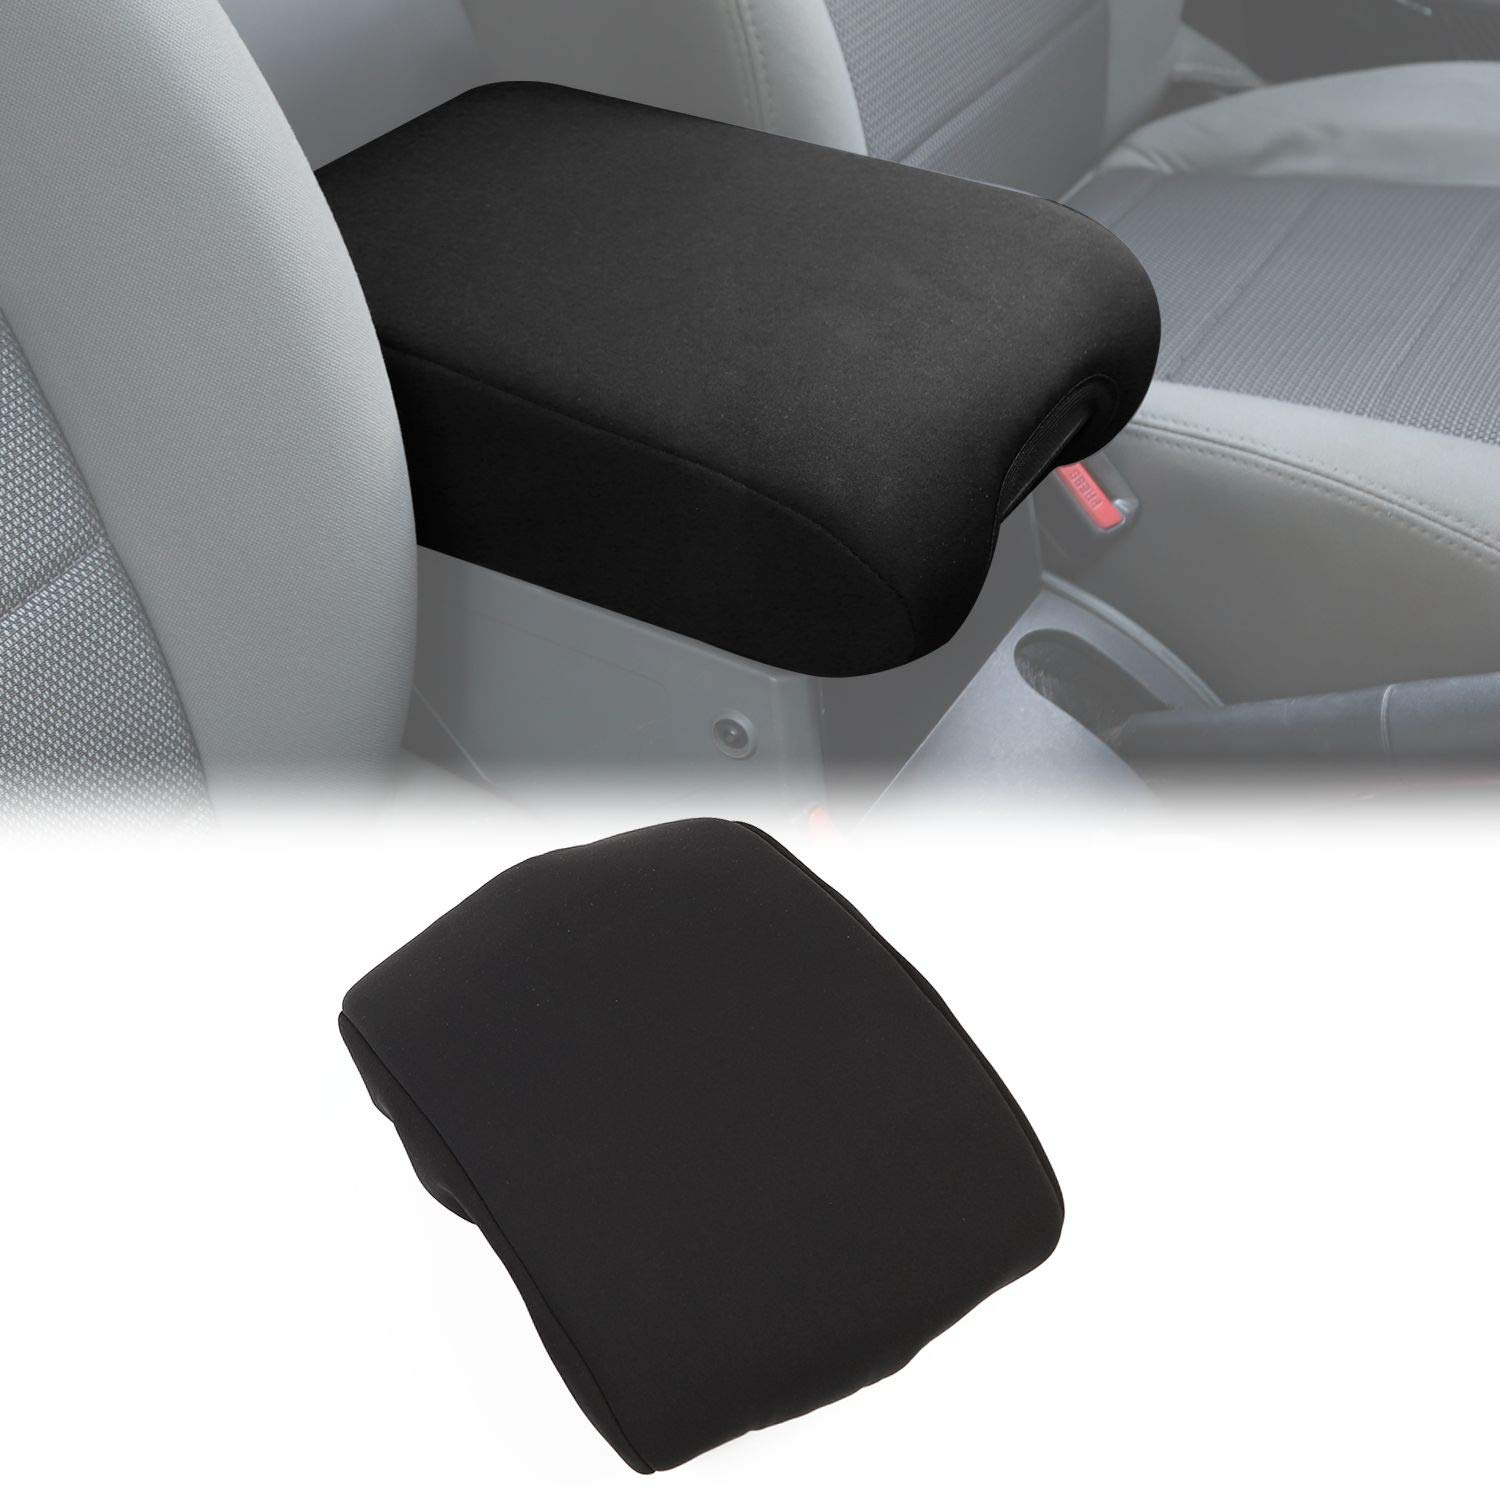 for JK Center Console Cover Pad Armrest Cover Cushion for 2007-2010 Jeep Wrangler JK JKU Sahara Sport Rubicon X /& Unlimited